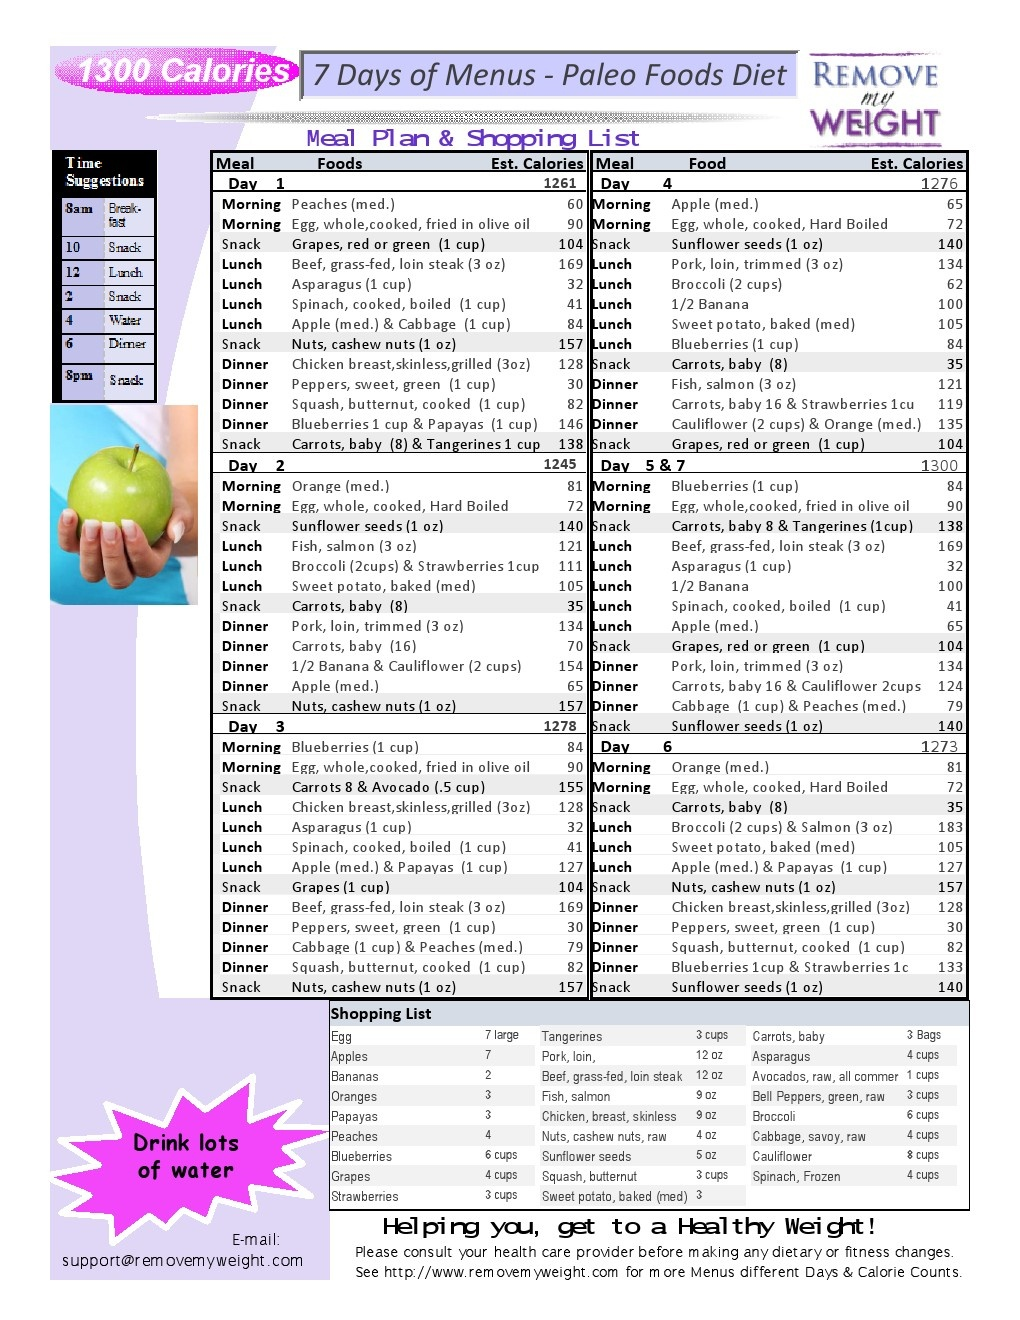 Paleo Diet 7 Day 1300 Calories A Day Meal Plan To Lose Weight - Menu - Free Printable Meal Plans For Weight Loss